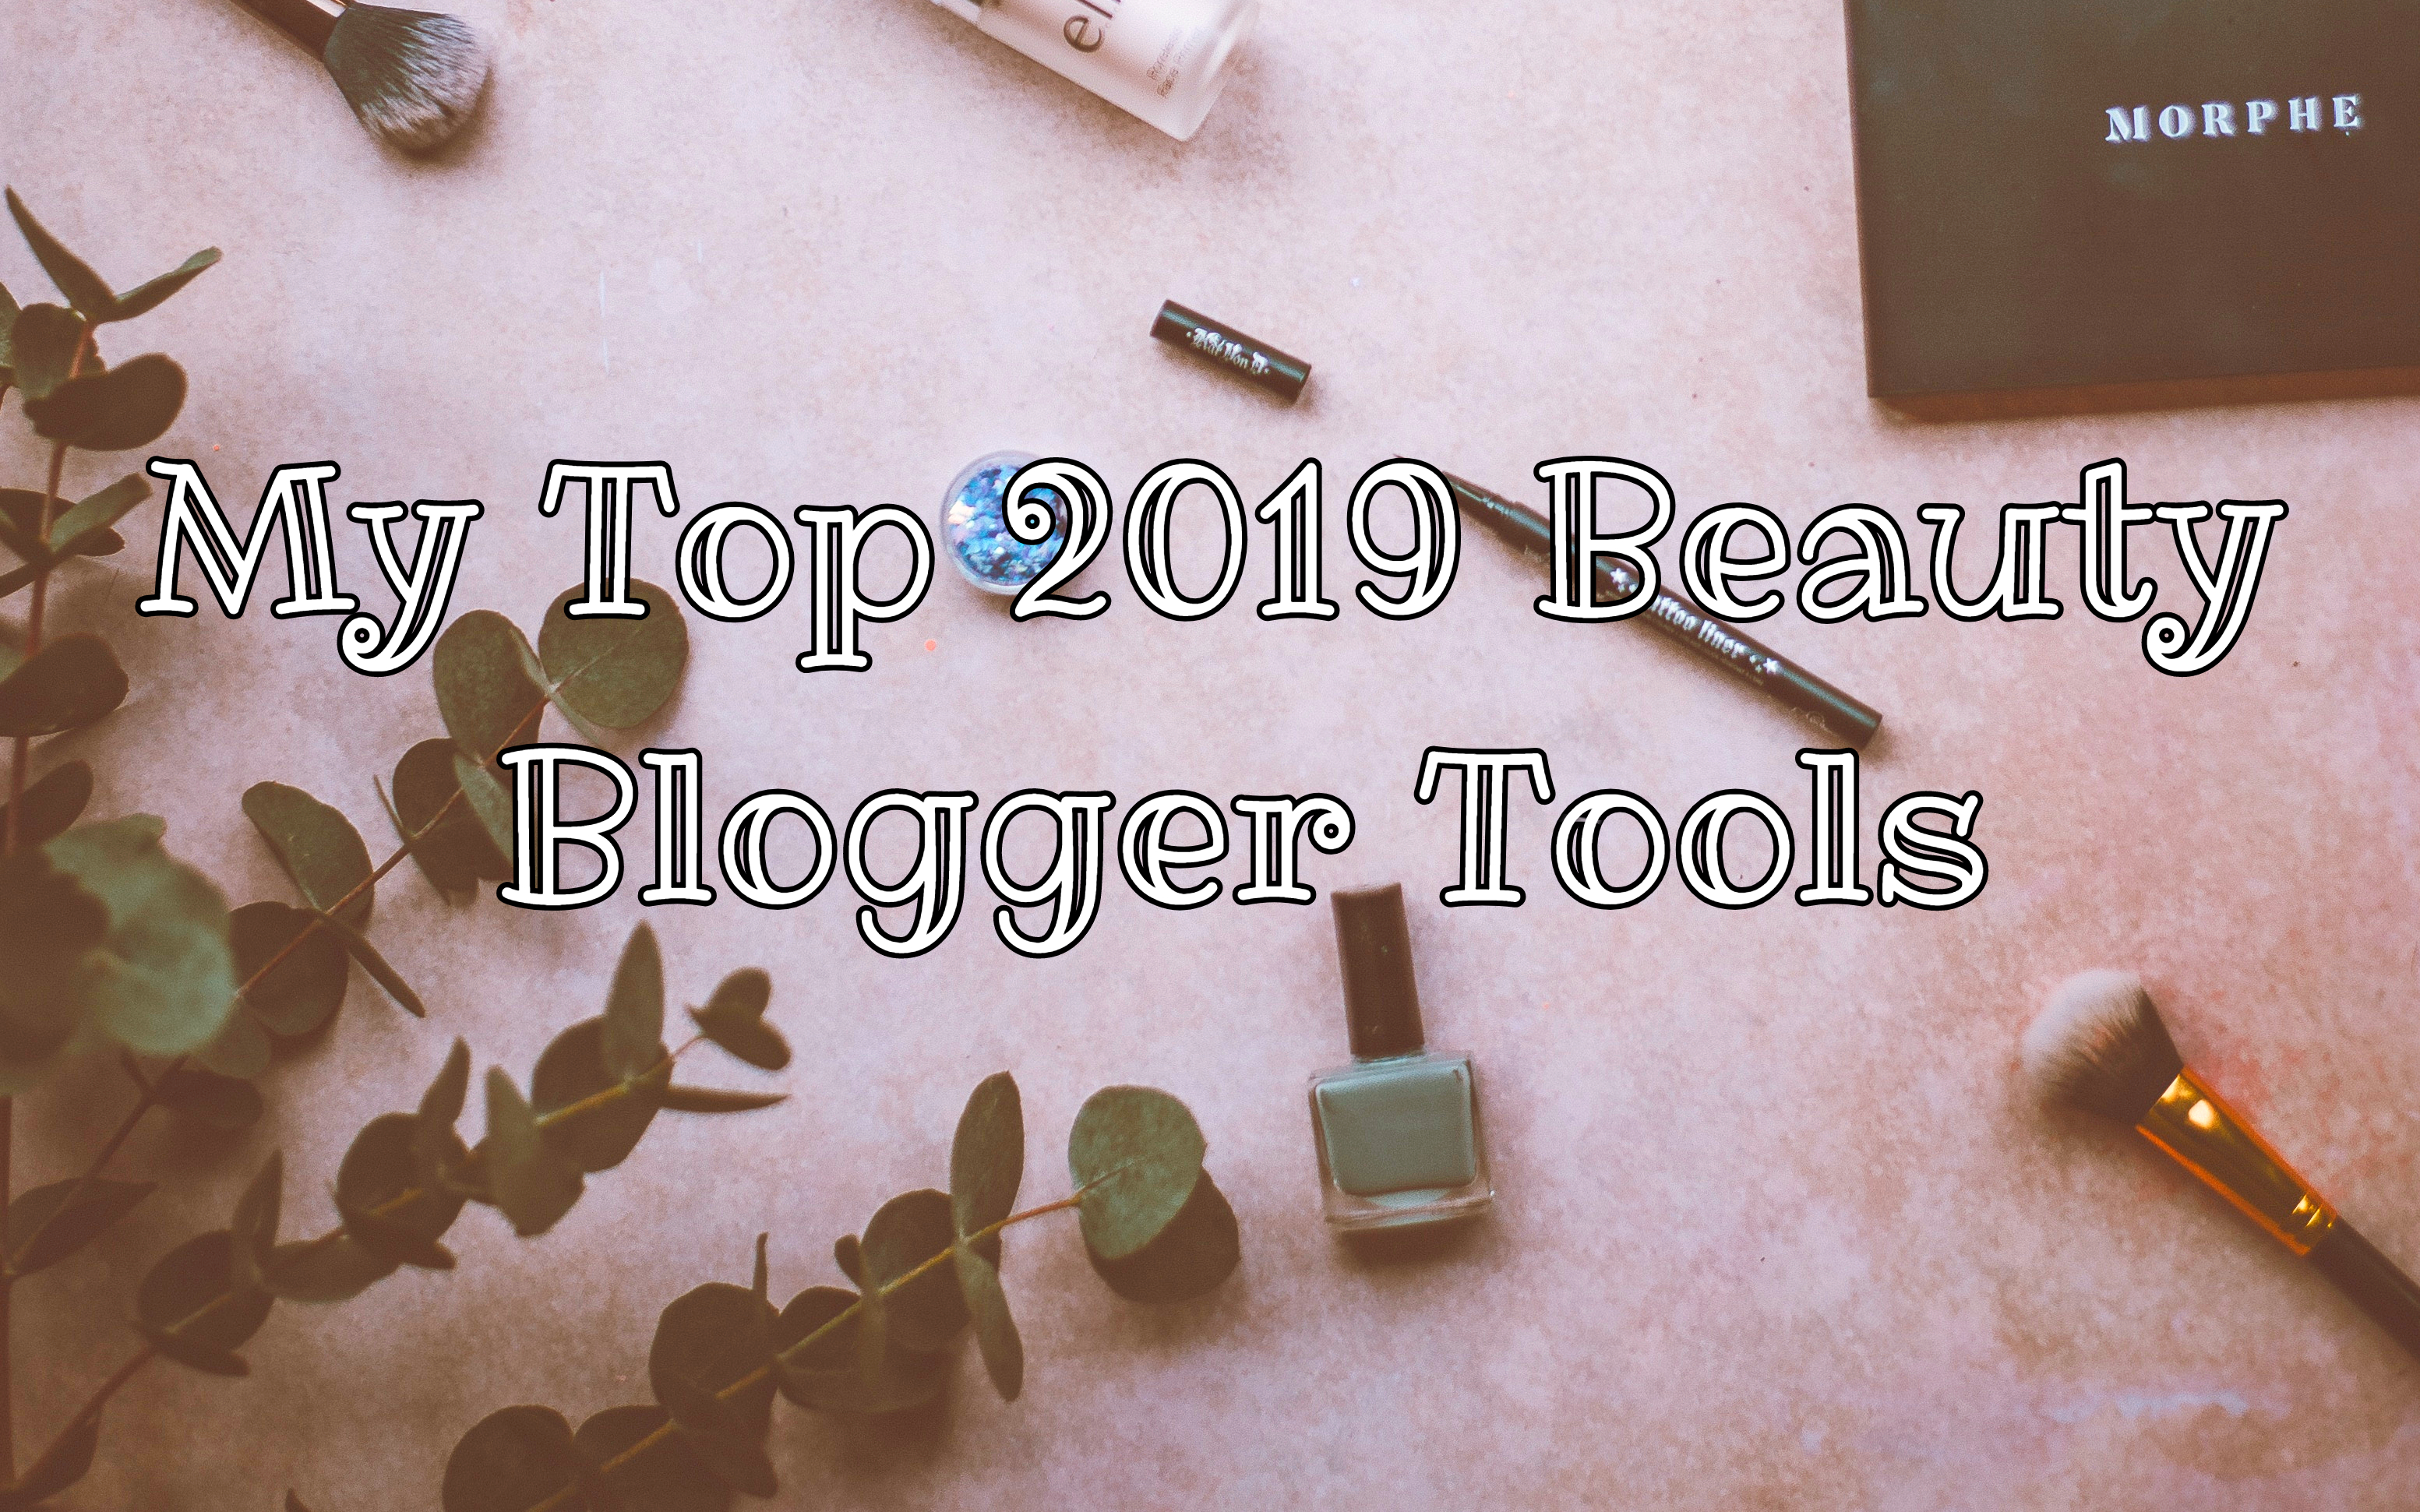 My Top 2019 Beauty Blogger Tools